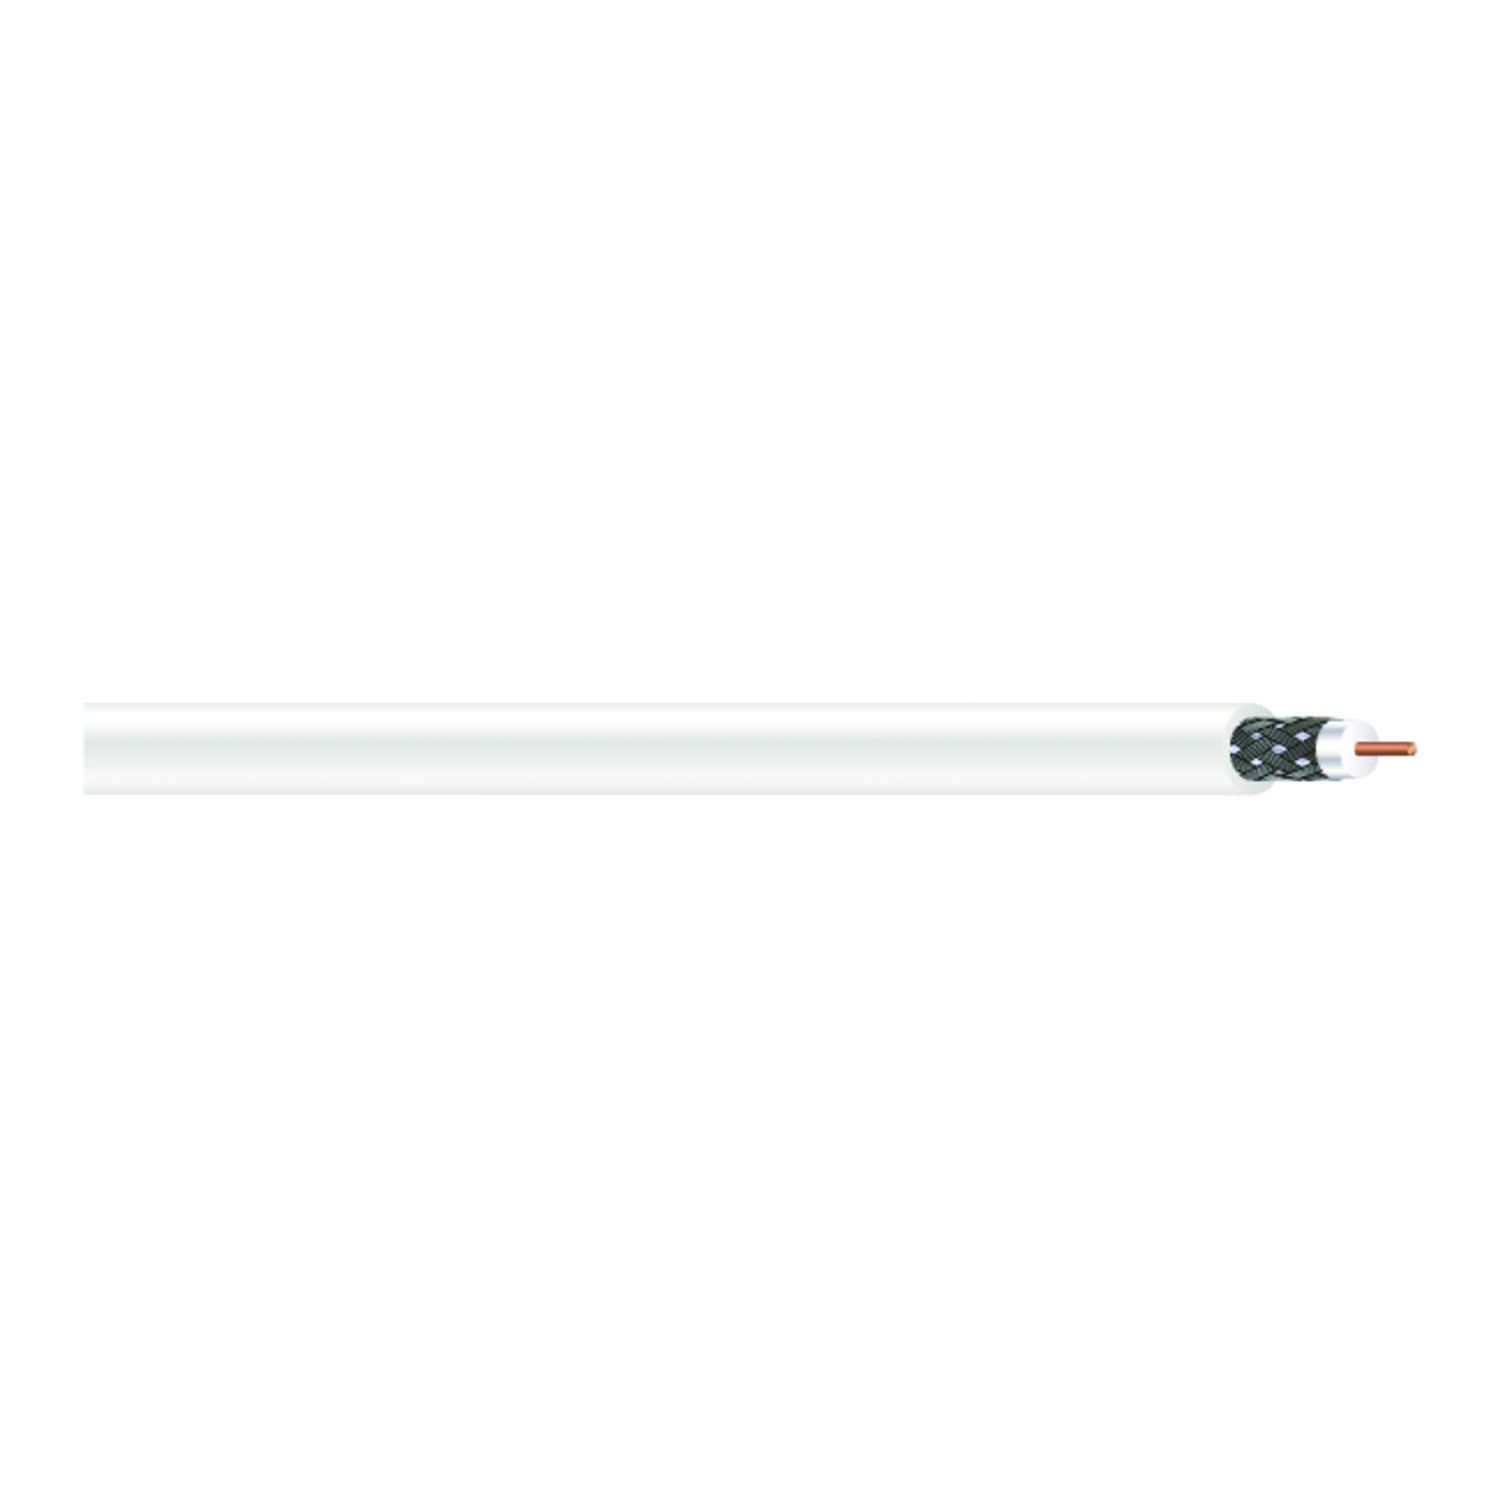 Southwire  500 ft. Stranded  RG6  Coaxial Cable  18